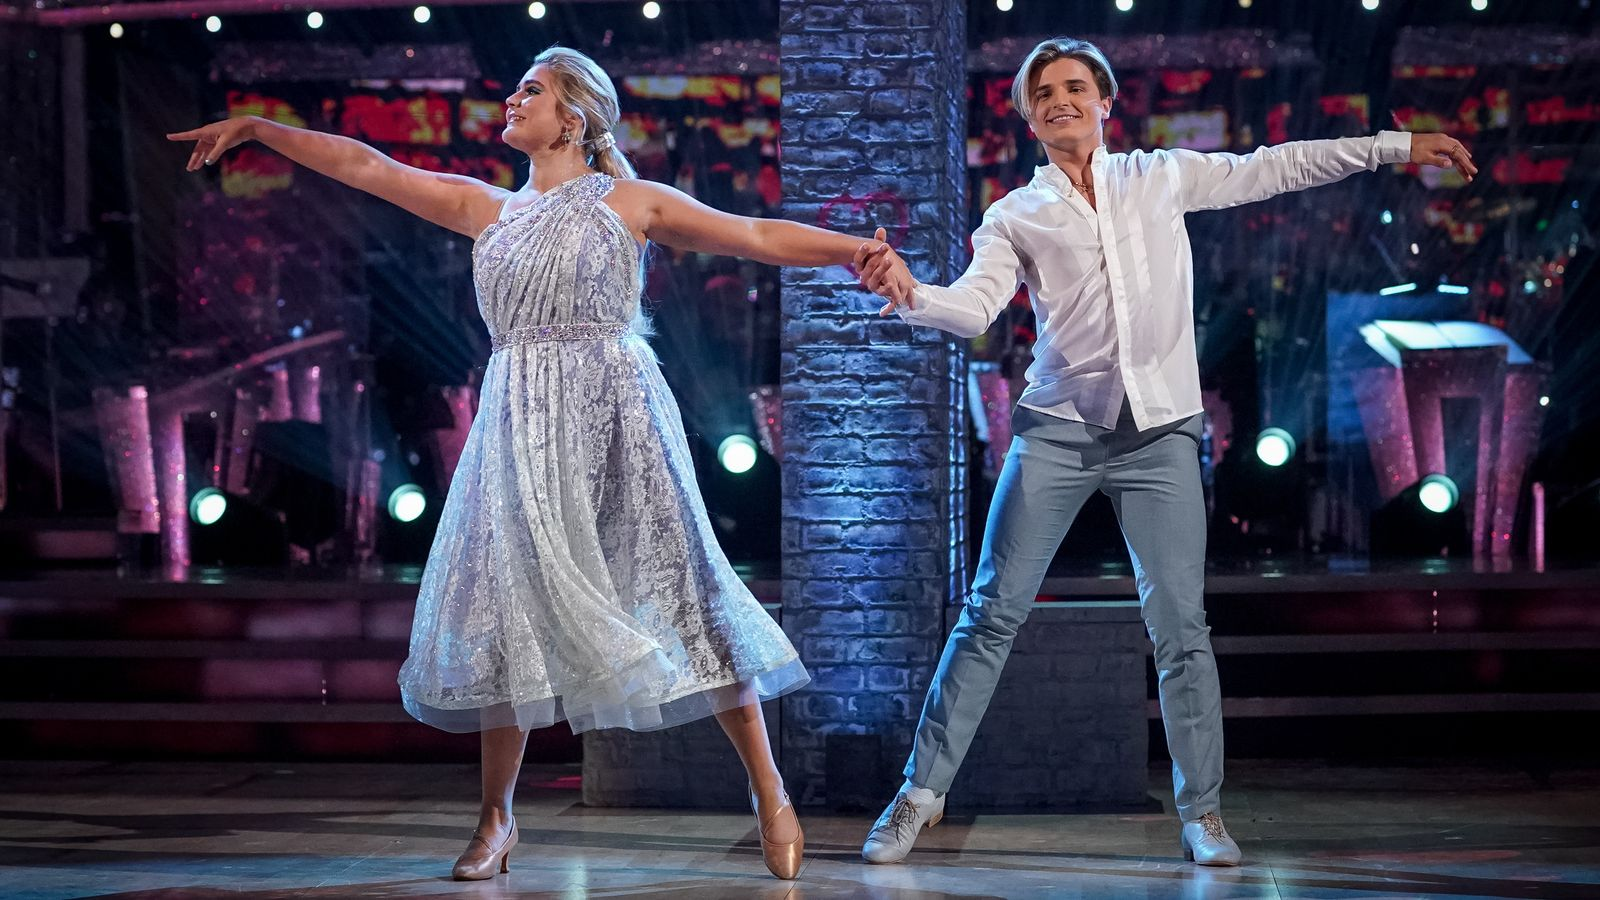 Tilly Ramsay: Steve Allen apologises for calling Strictly Come Dancing star a 'chubby little thing'